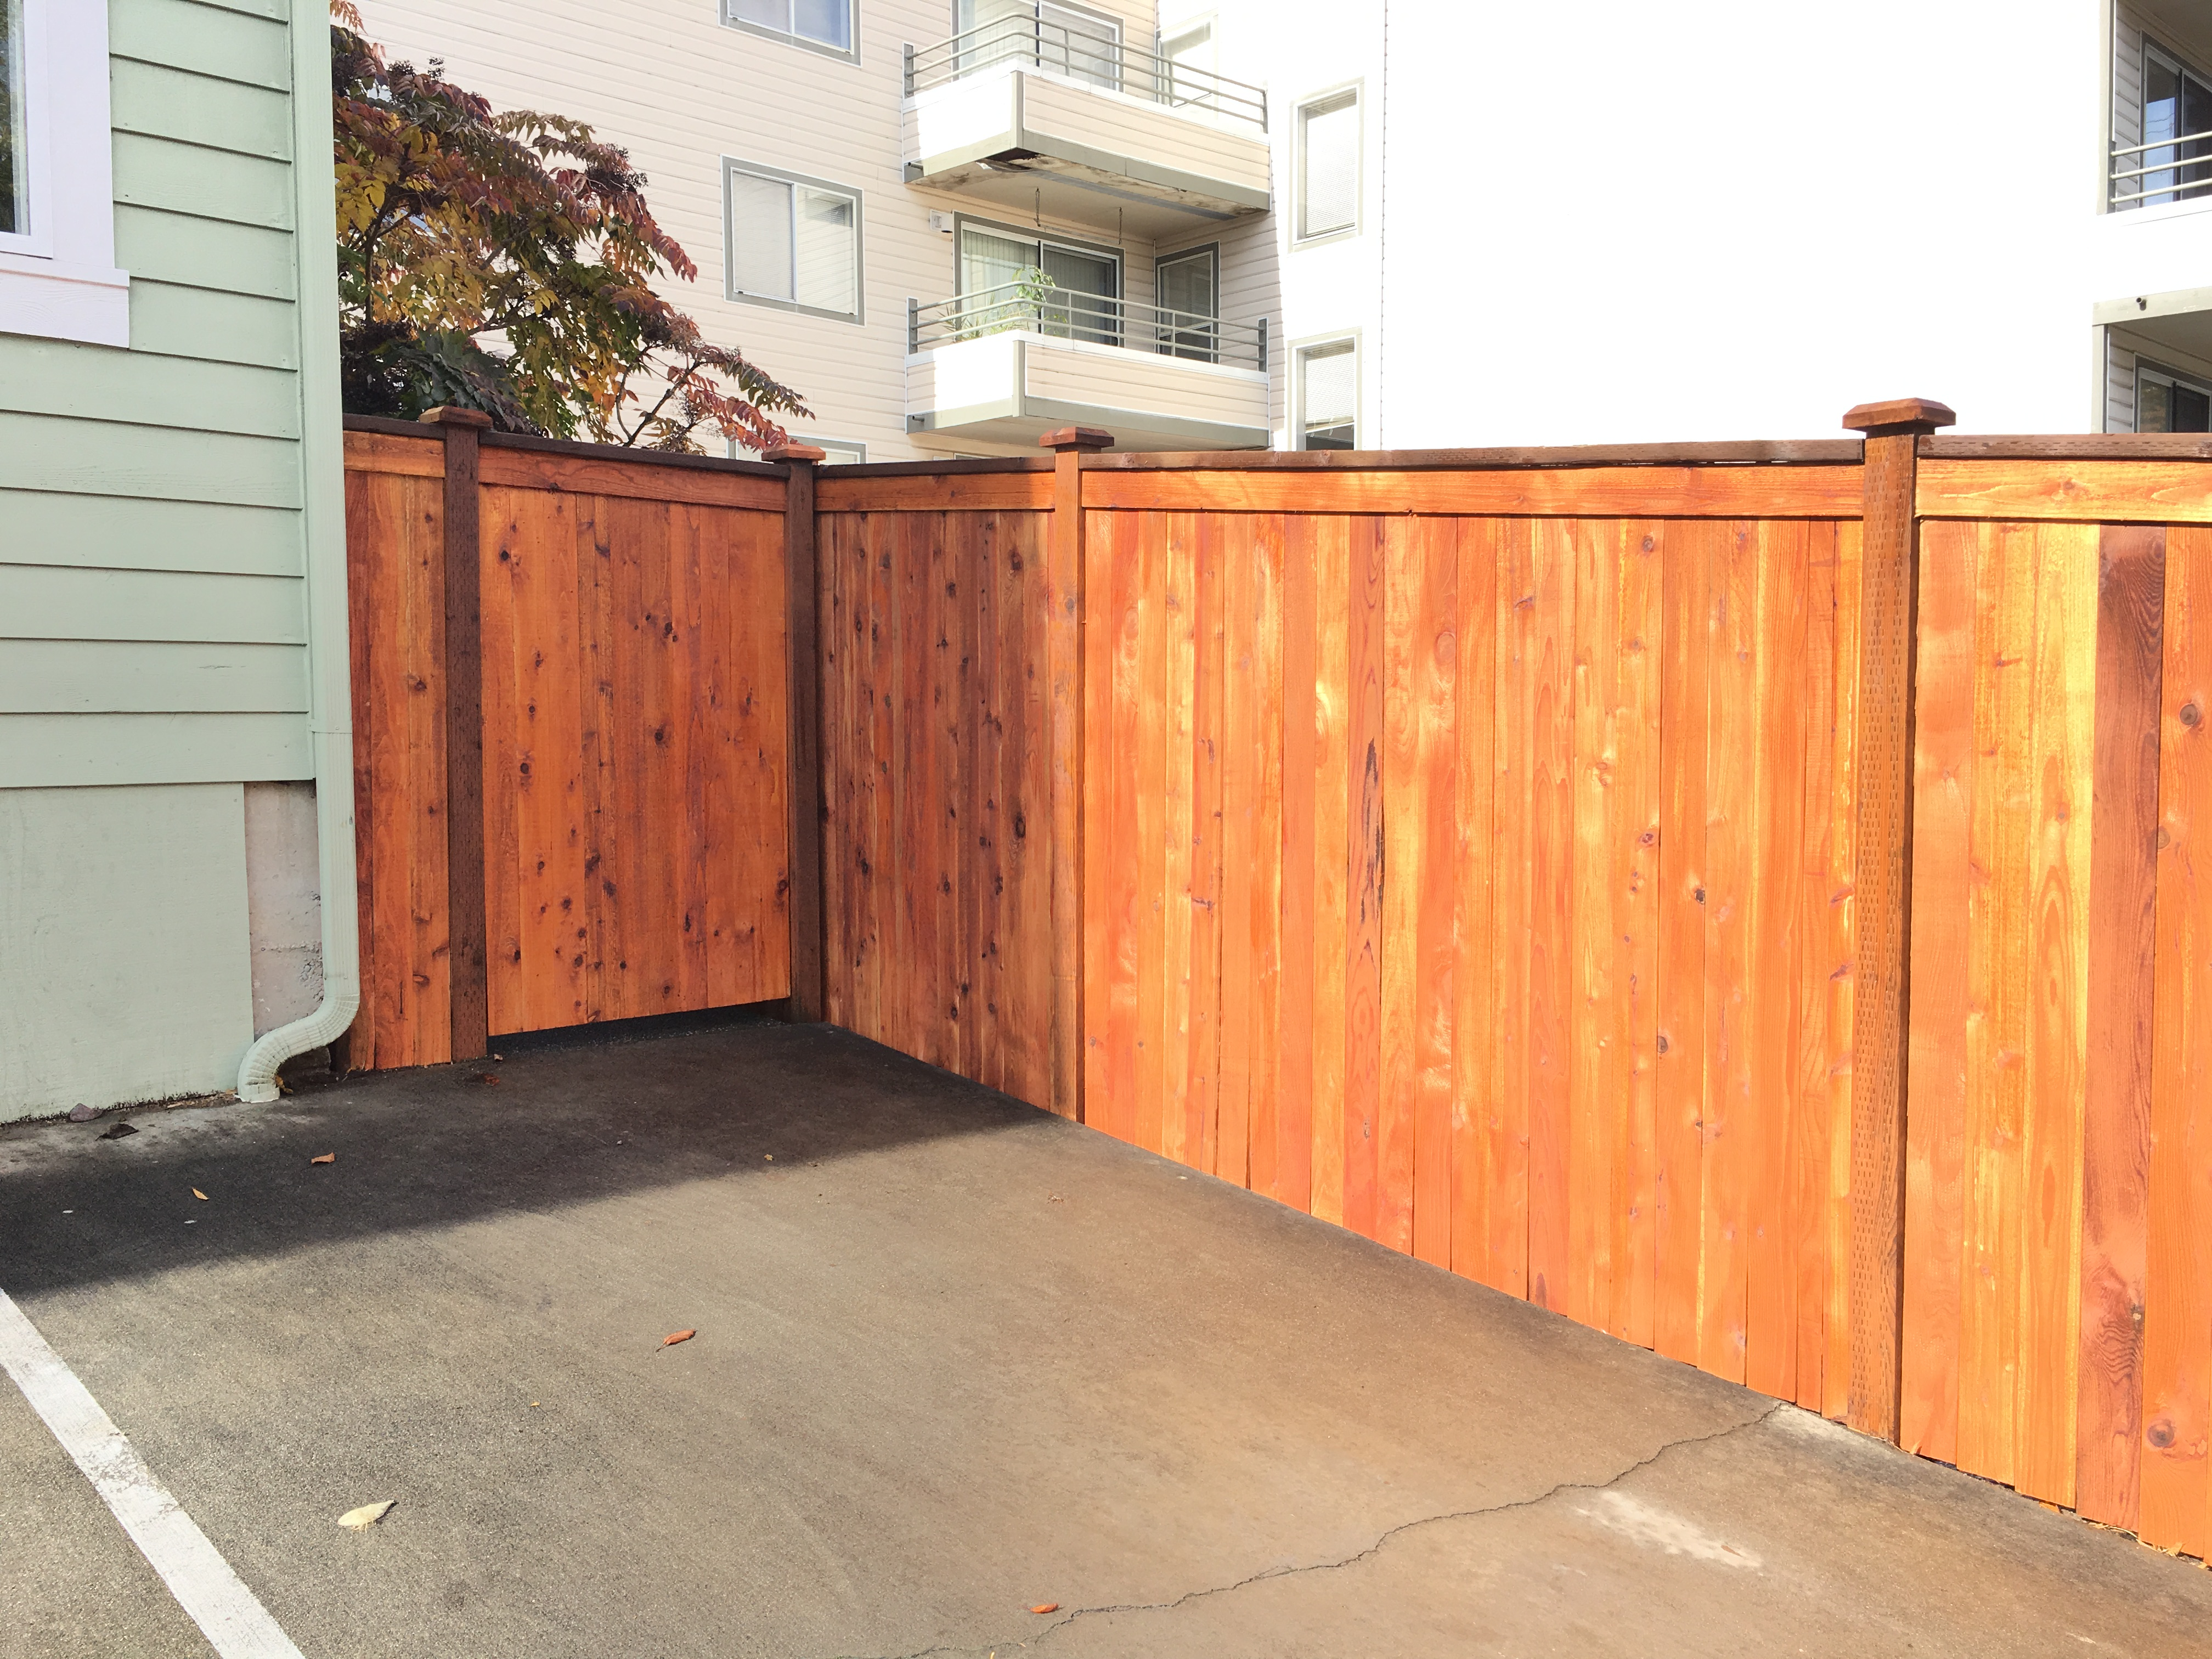 seattle fence building